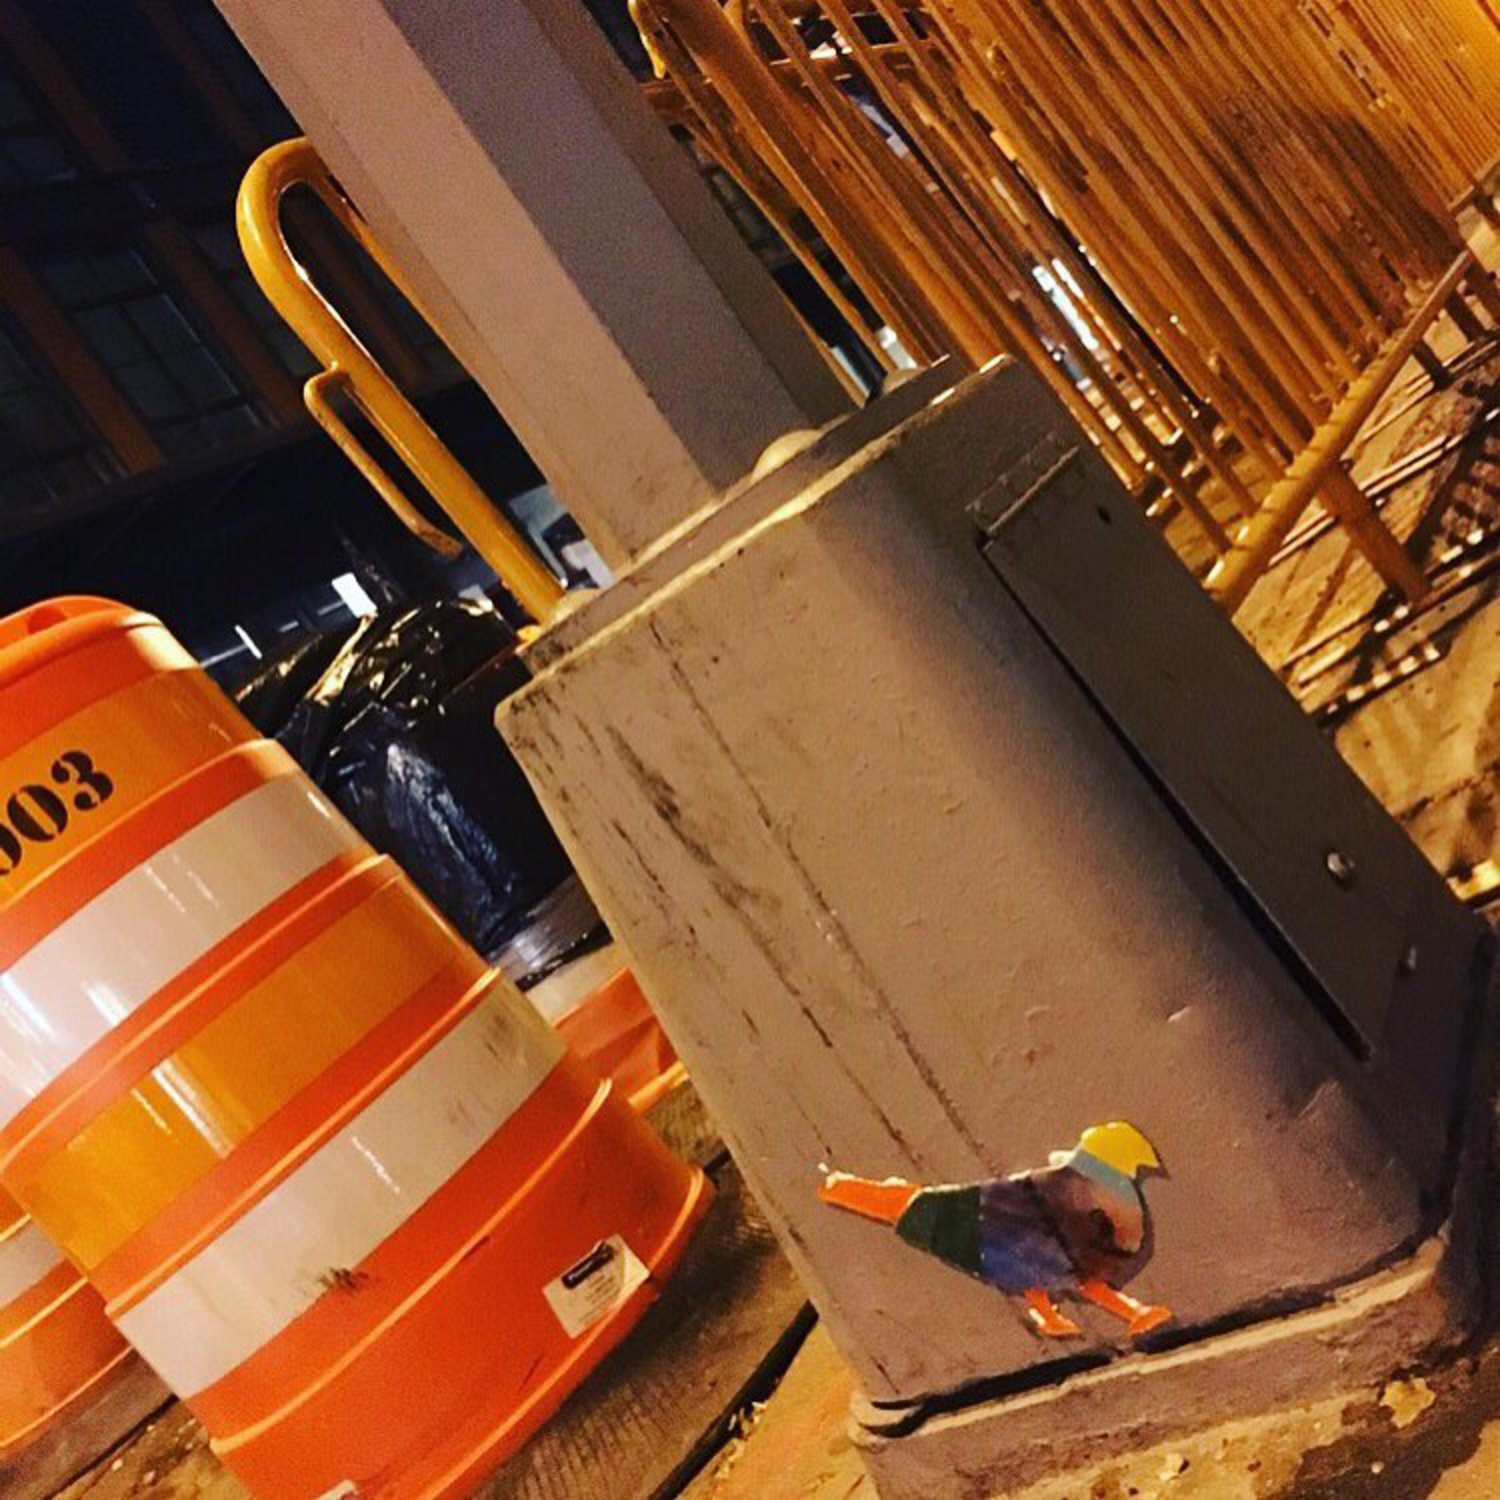 Pigeon 46 - Greenwich St @ Gansevoort St. #pigeon #meatpackingdistrict #nyc #streetlight #orange #original #glass #art #nycstreetart #thestreetsofnyc #wheatpaste #grafitti #urban #tv_streetart_ #design #streetlightpigeon #gbpigeonnyc #gbwashere